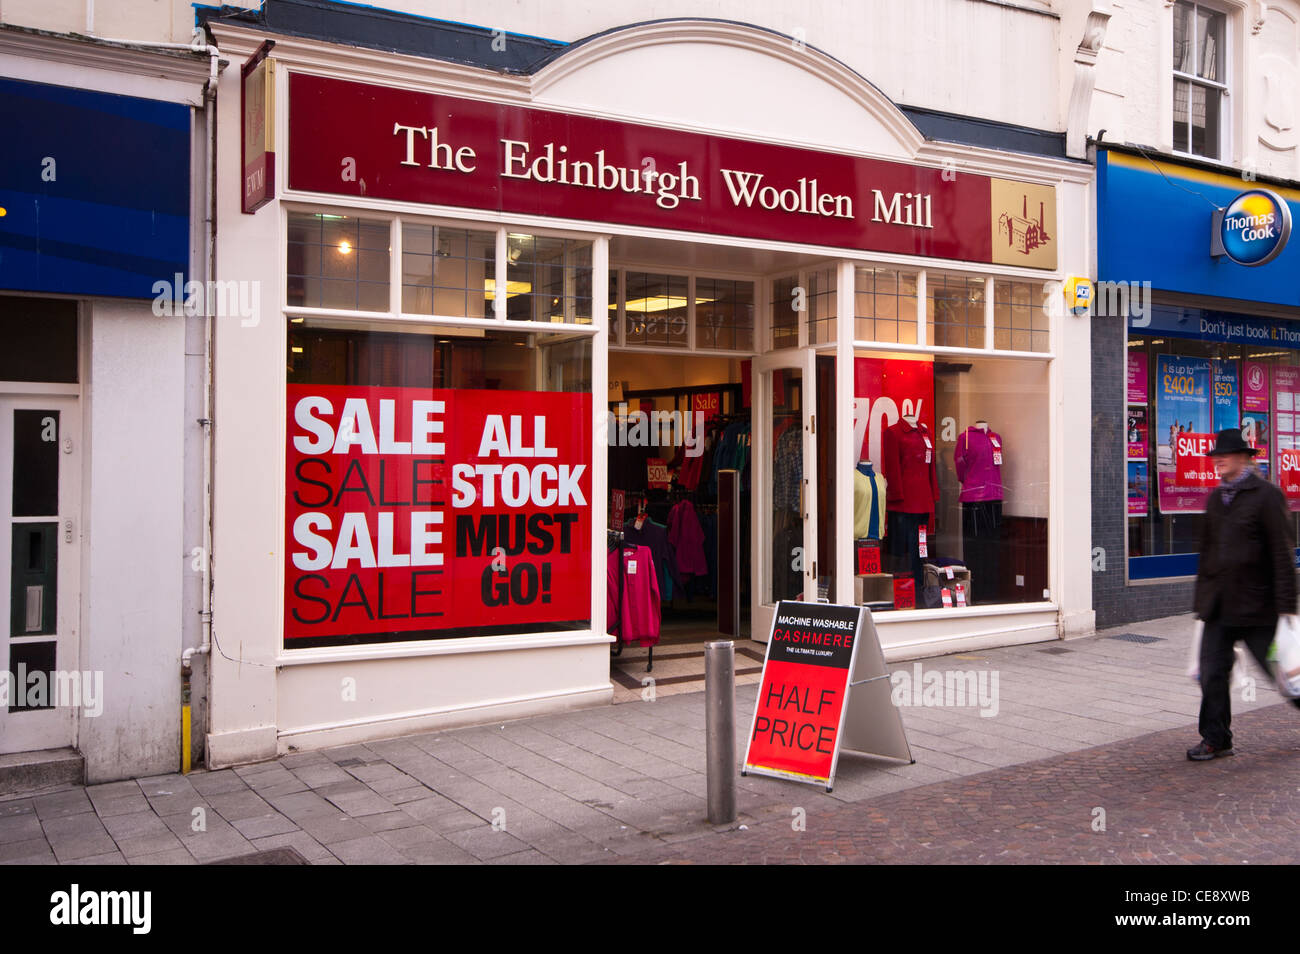 Uk High Street Clothes Clothing Shop Shops The Edinburgh